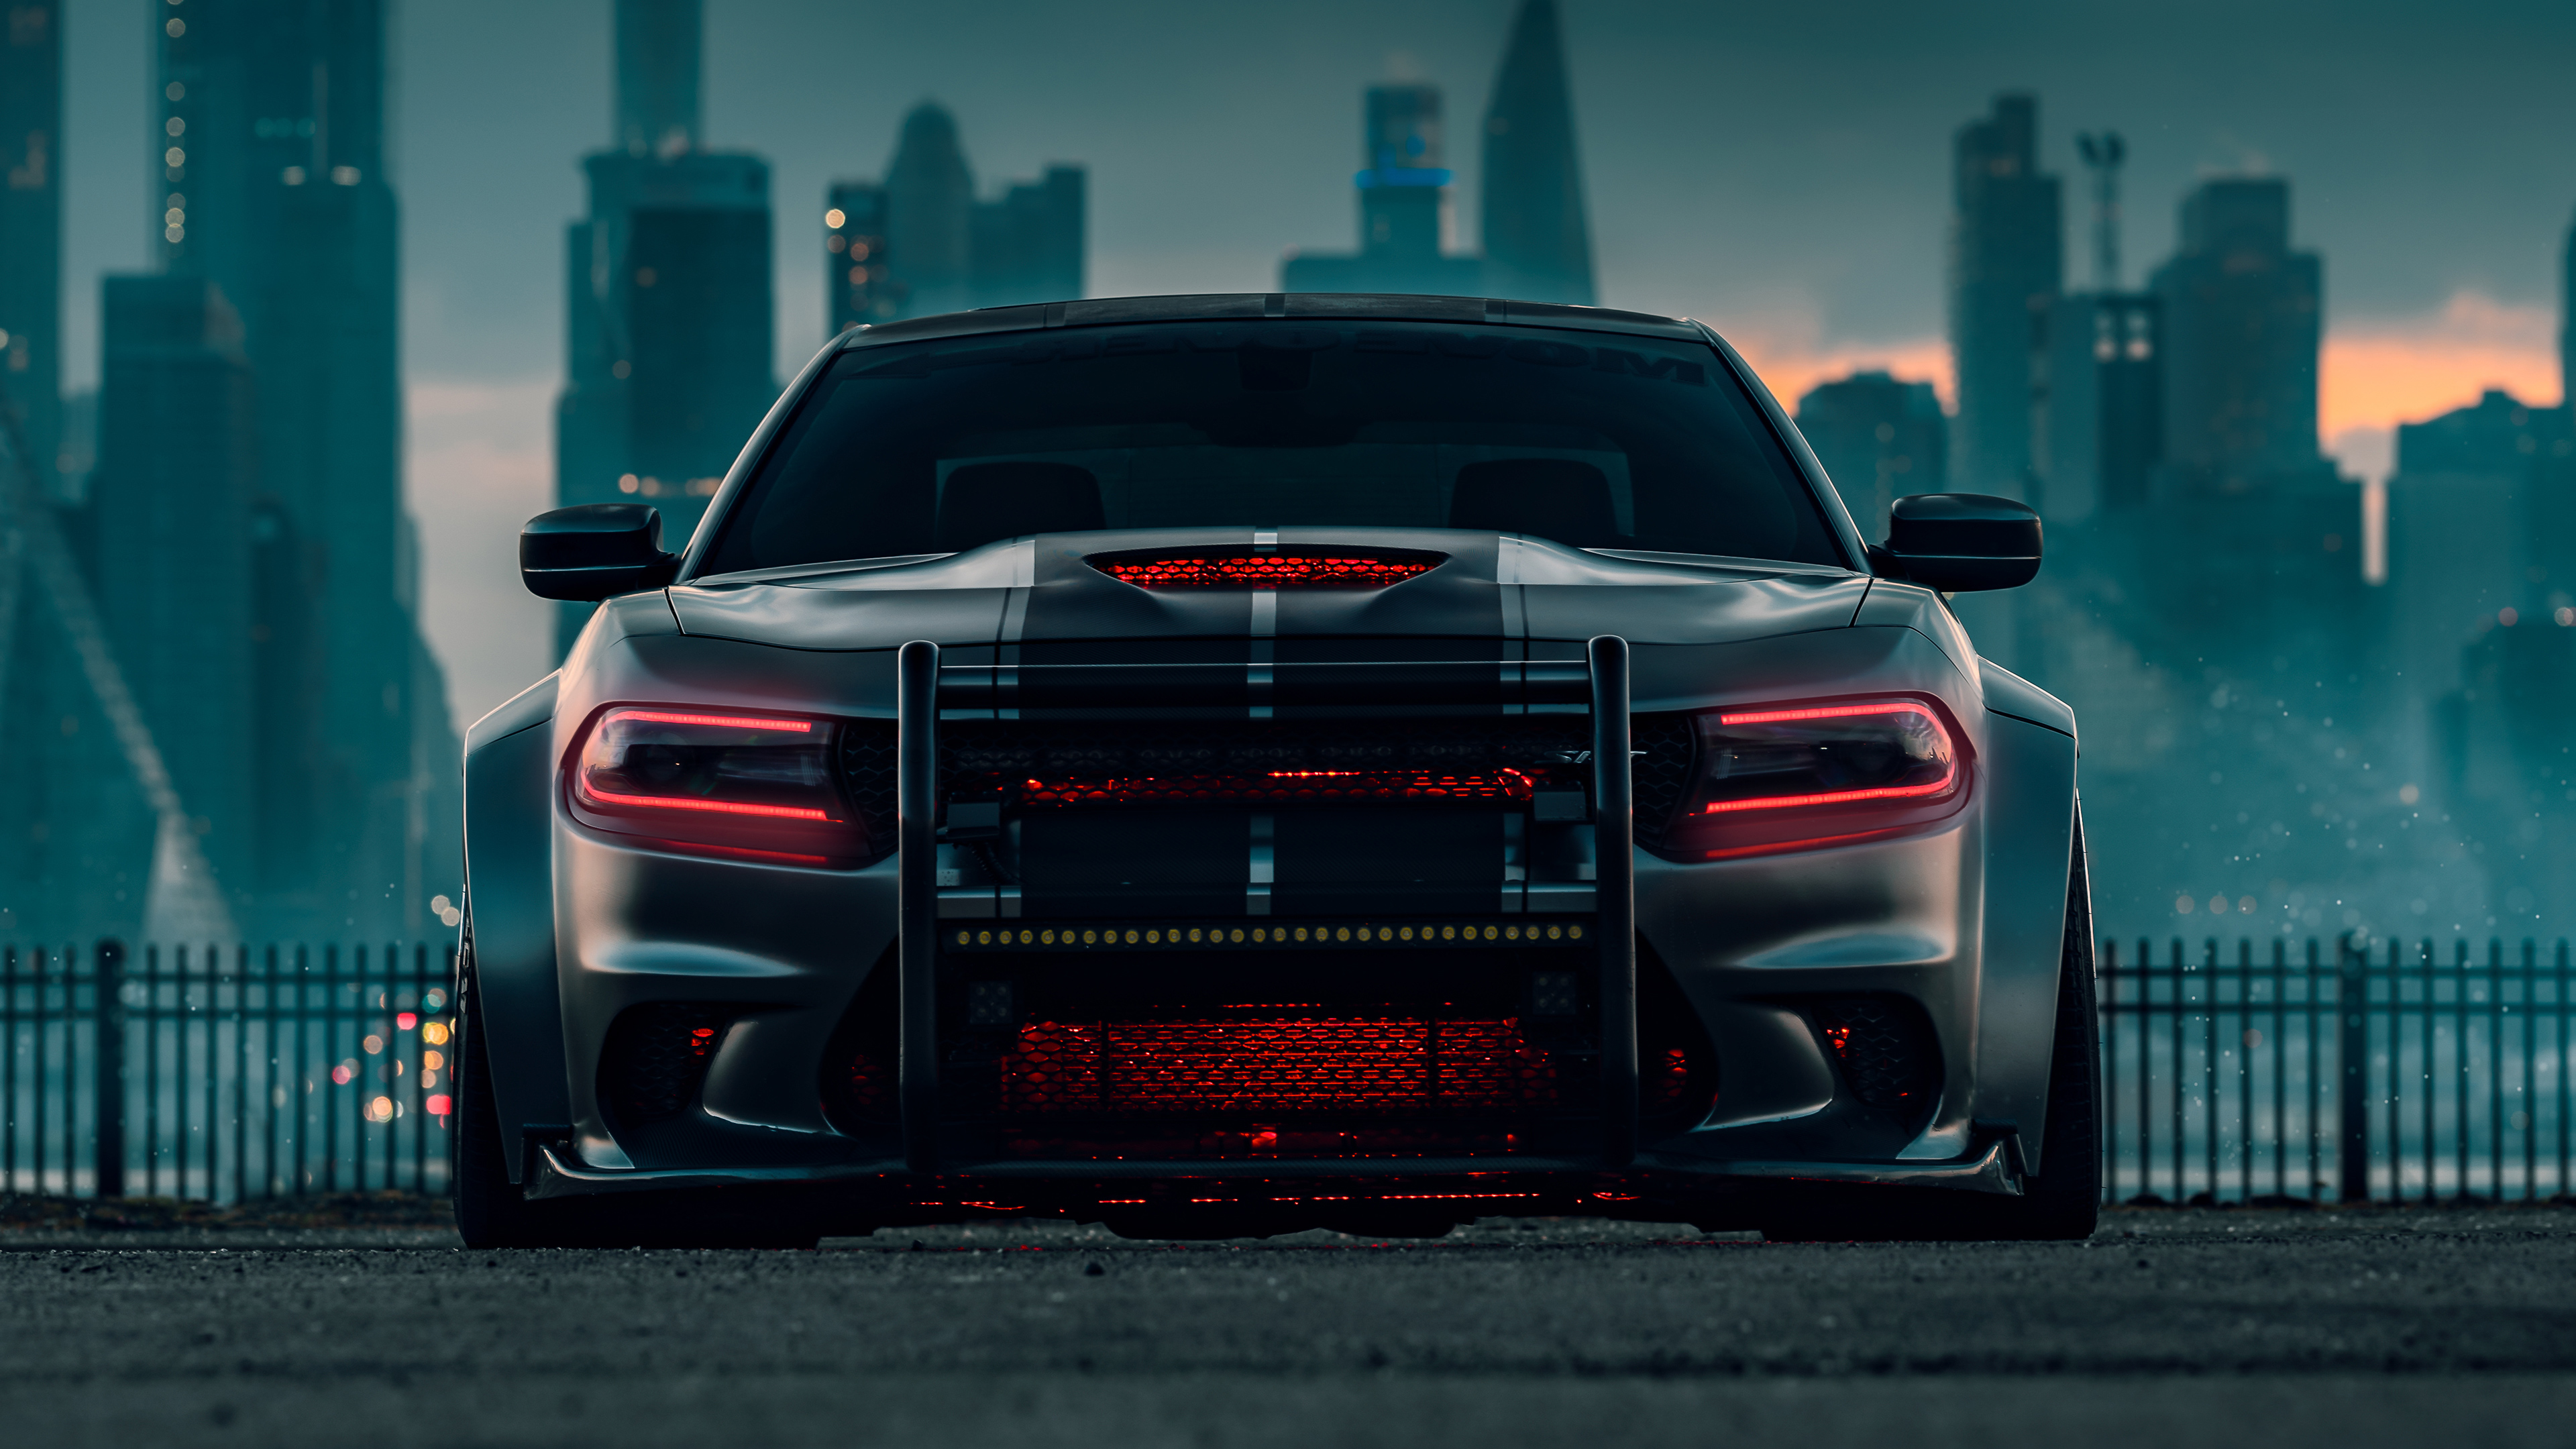 Dodge Charger Srt Hellcat 2020 4k Hd Cars 4k Wallpapers Images Backgrounds Photos And Pictures